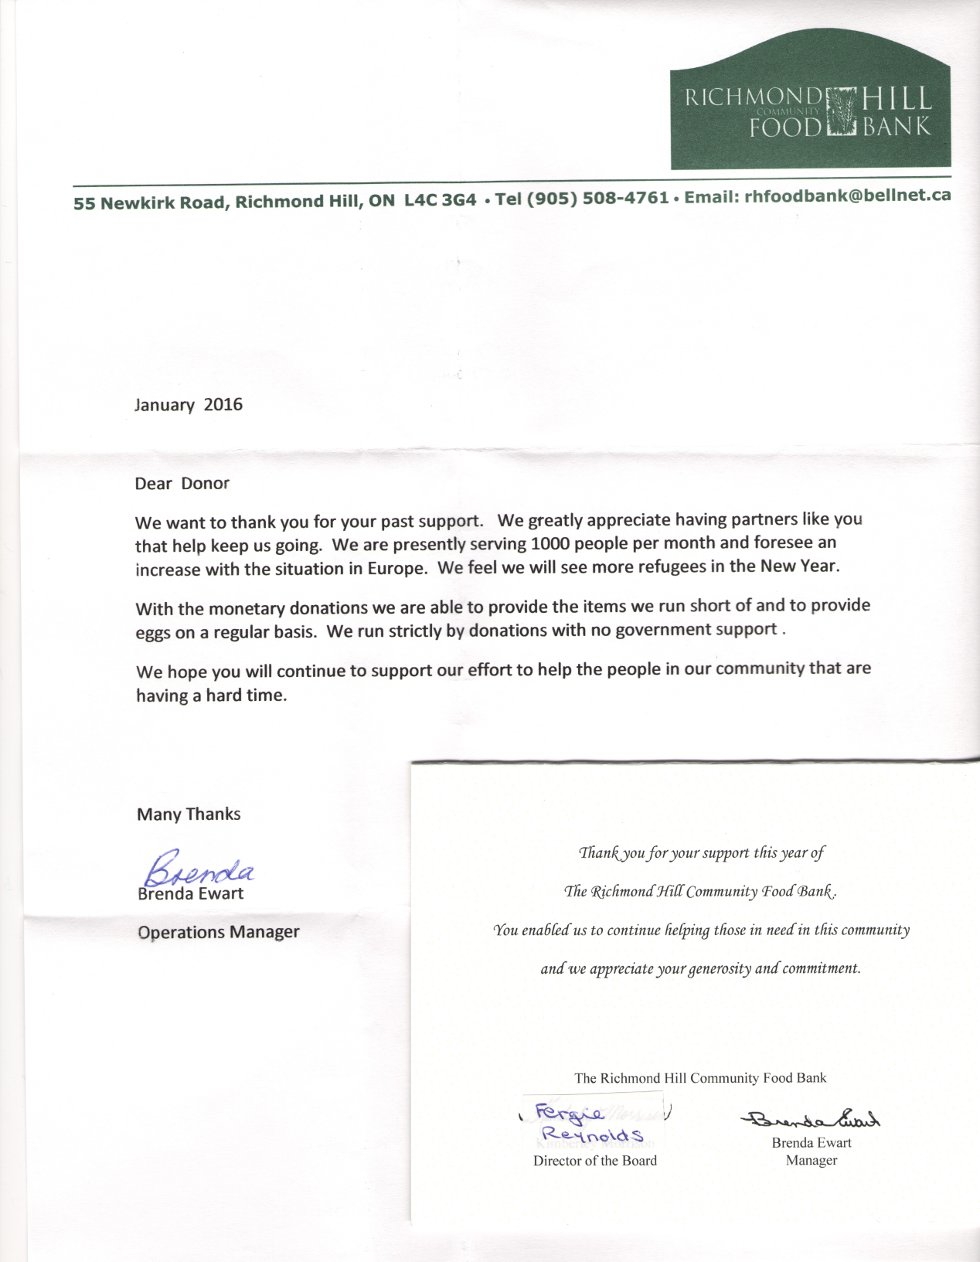 RHOTHL Donation to Richmond Hill Food Bank Letter